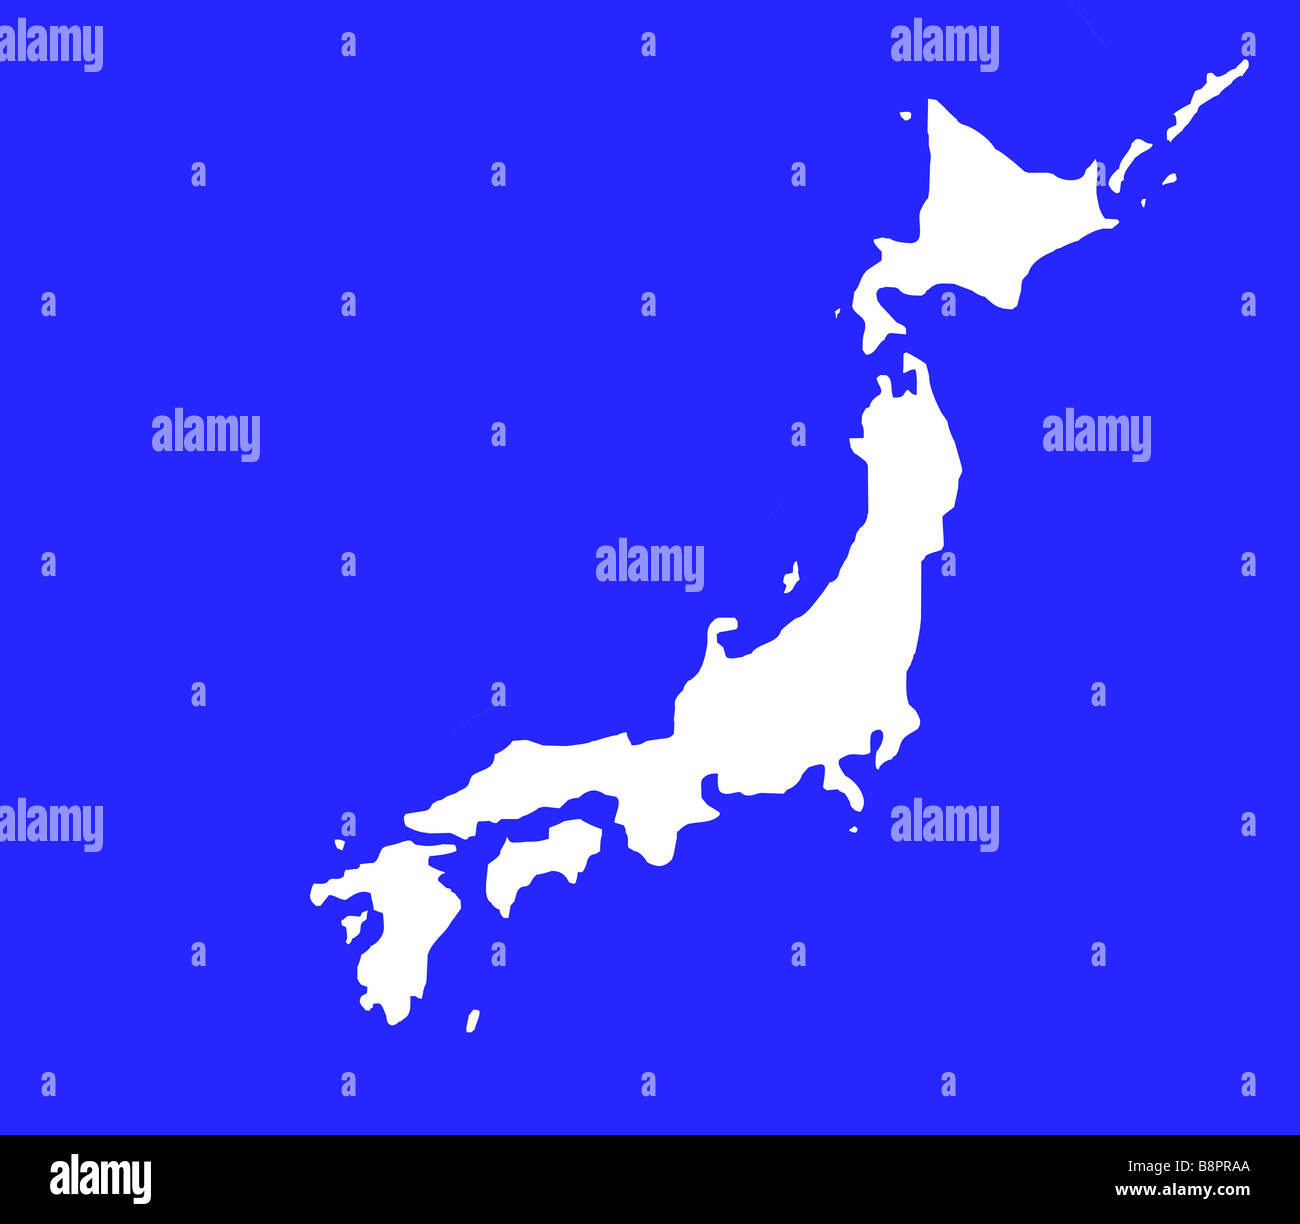 Island Of Japan Map Outline Isolated In White On Blue Background - Japan map outline